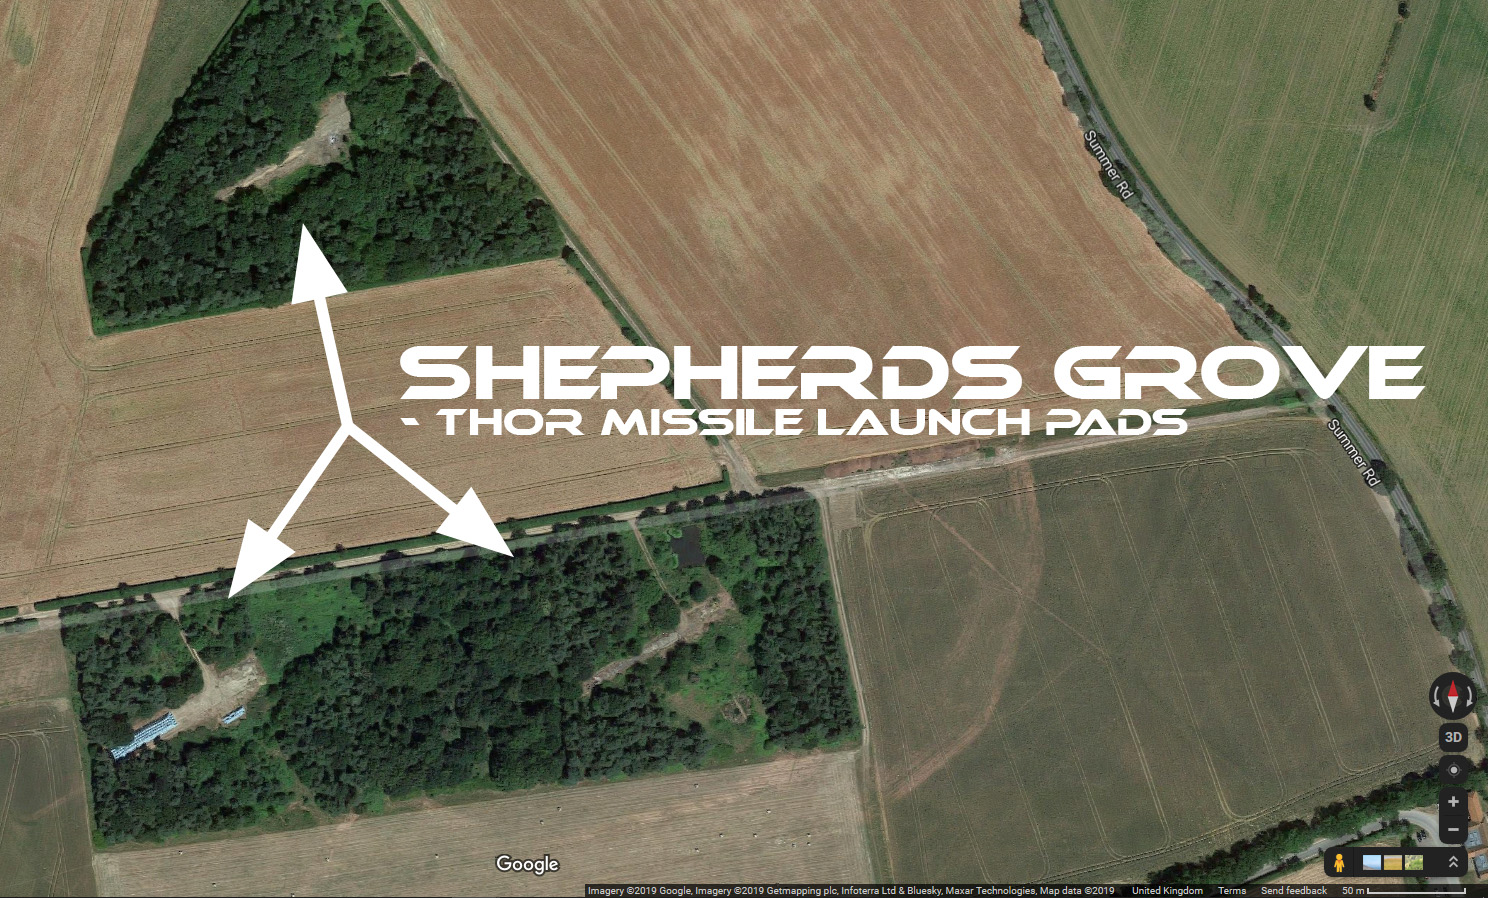 Shepherds Grove Thor missile launch pads